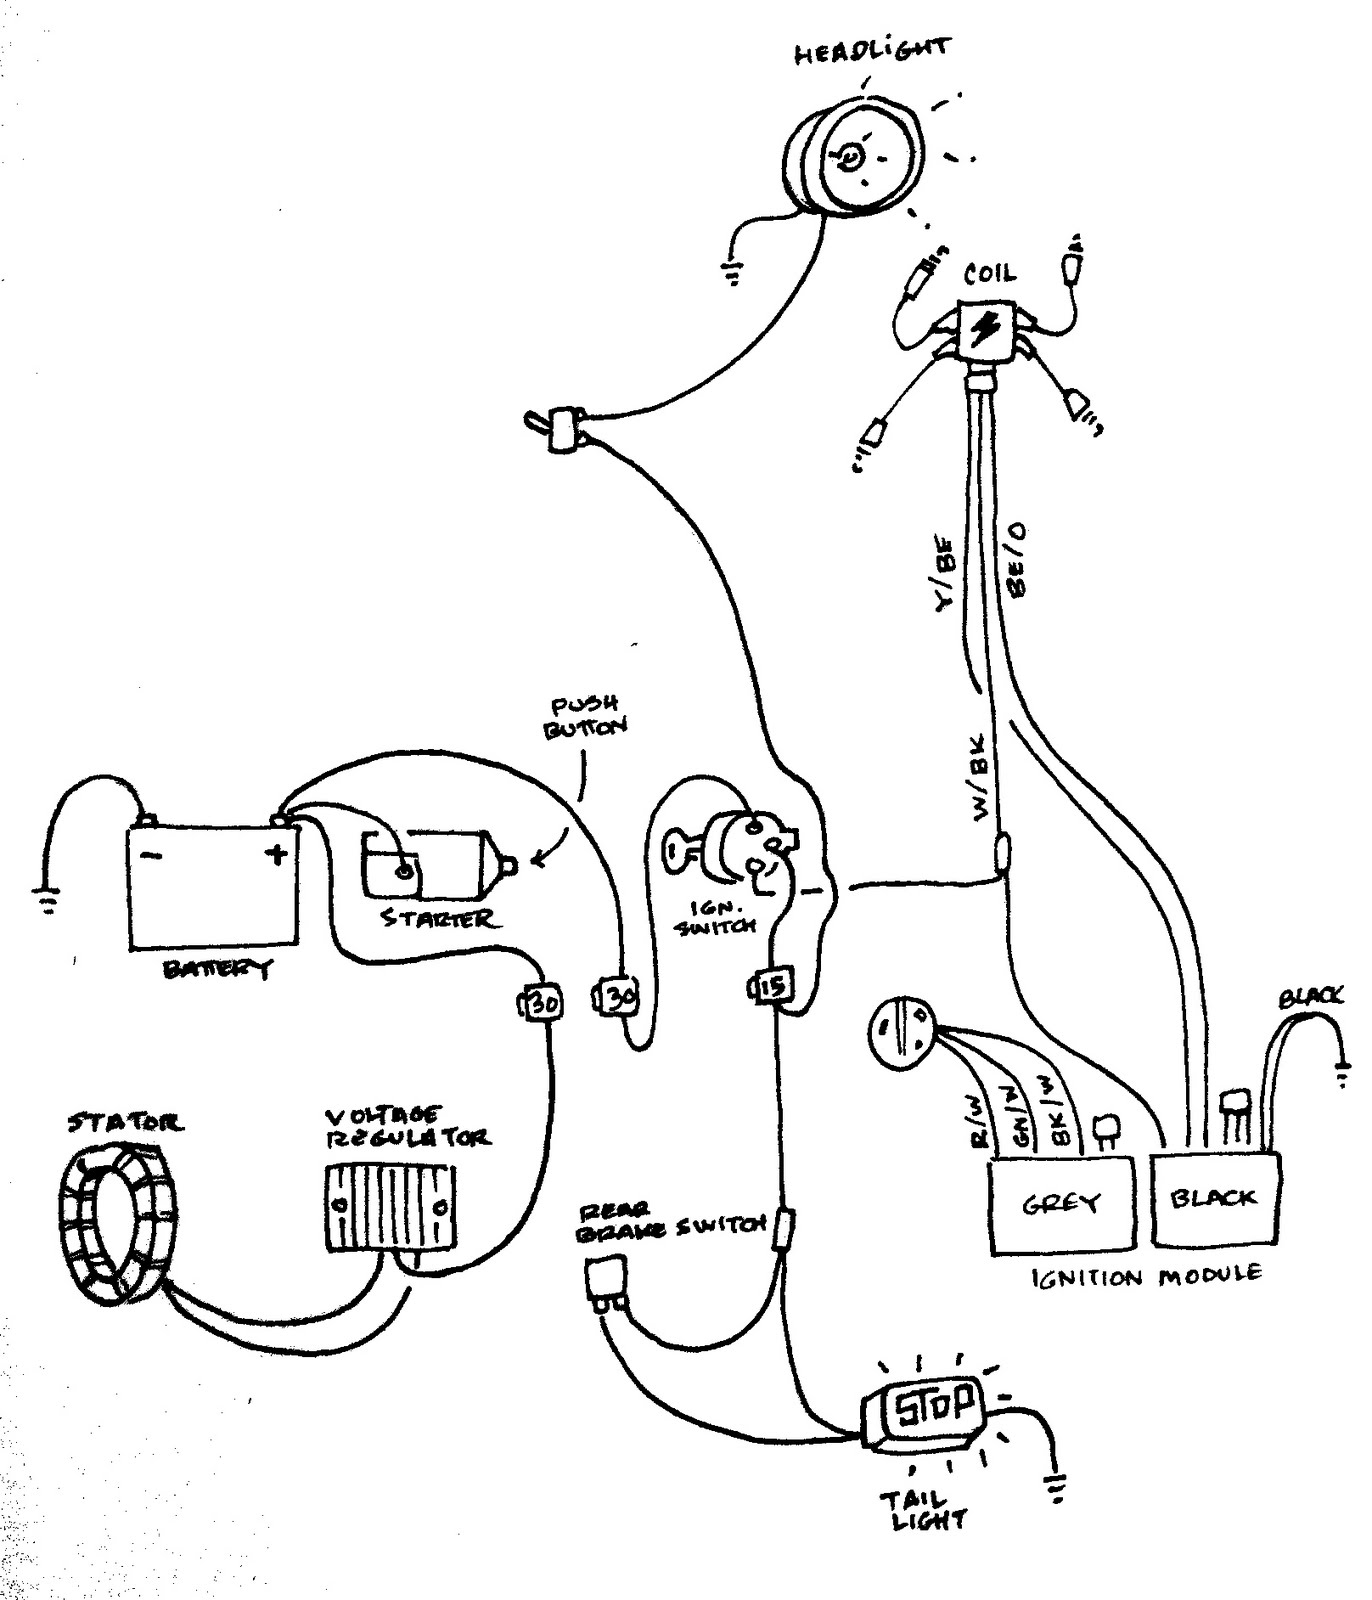 wiring diagram for bike best wiring library Wiring Diagram 2005 Colorado 2002 sporty wiring diagram old biltwell blog sporty wiring how